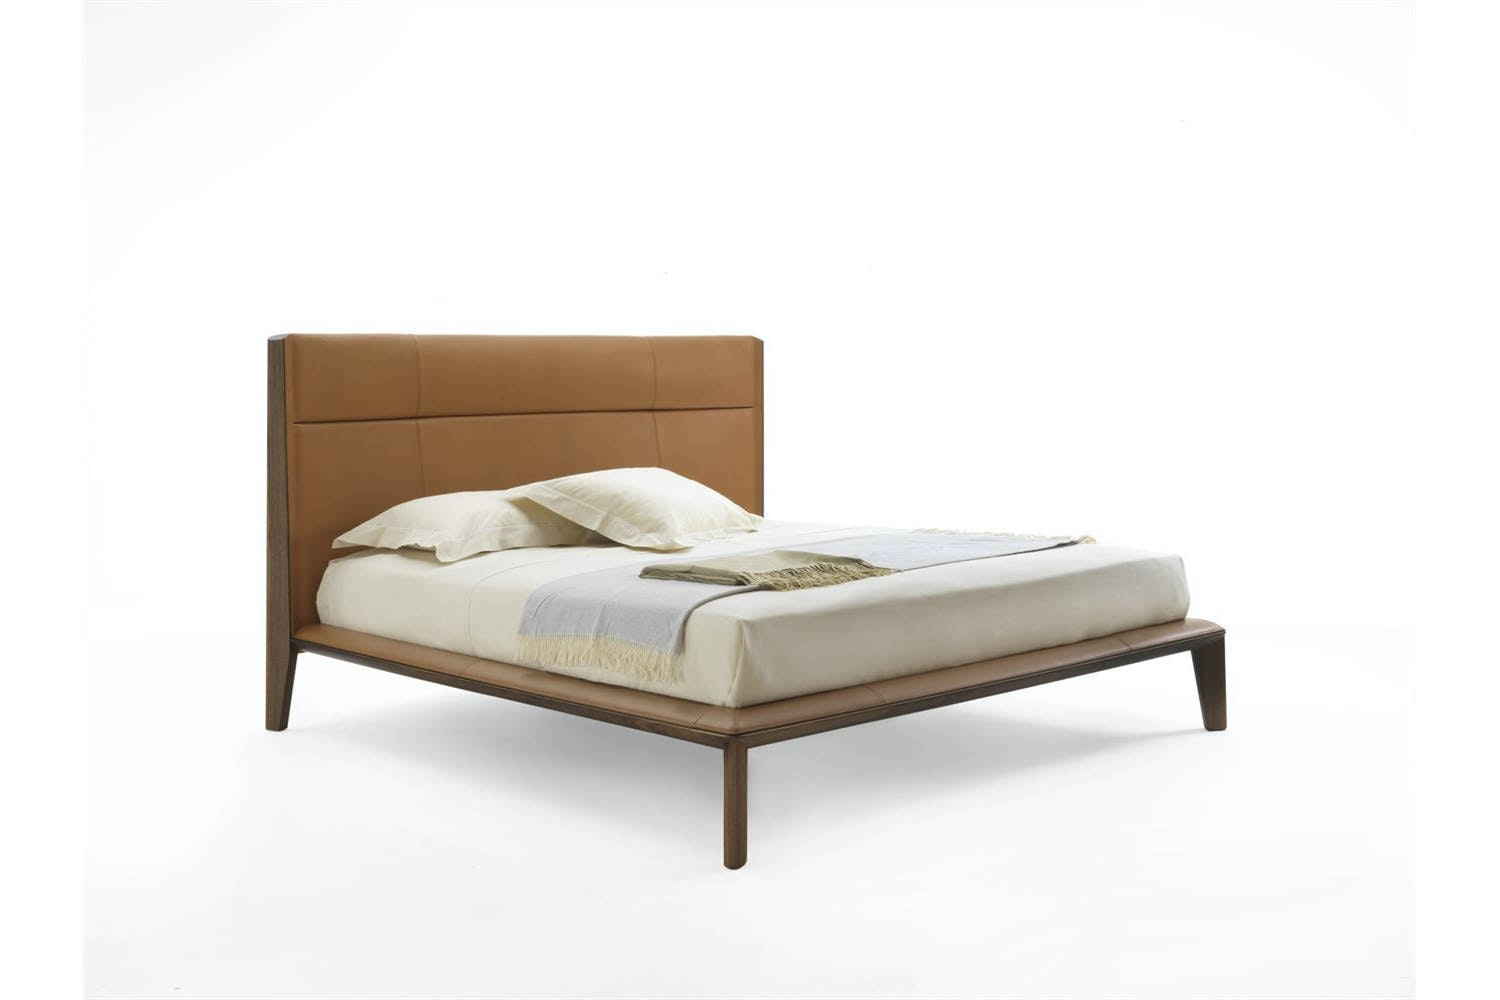 Nyan Bed by Gabriele and Oscar Buratti for Porada